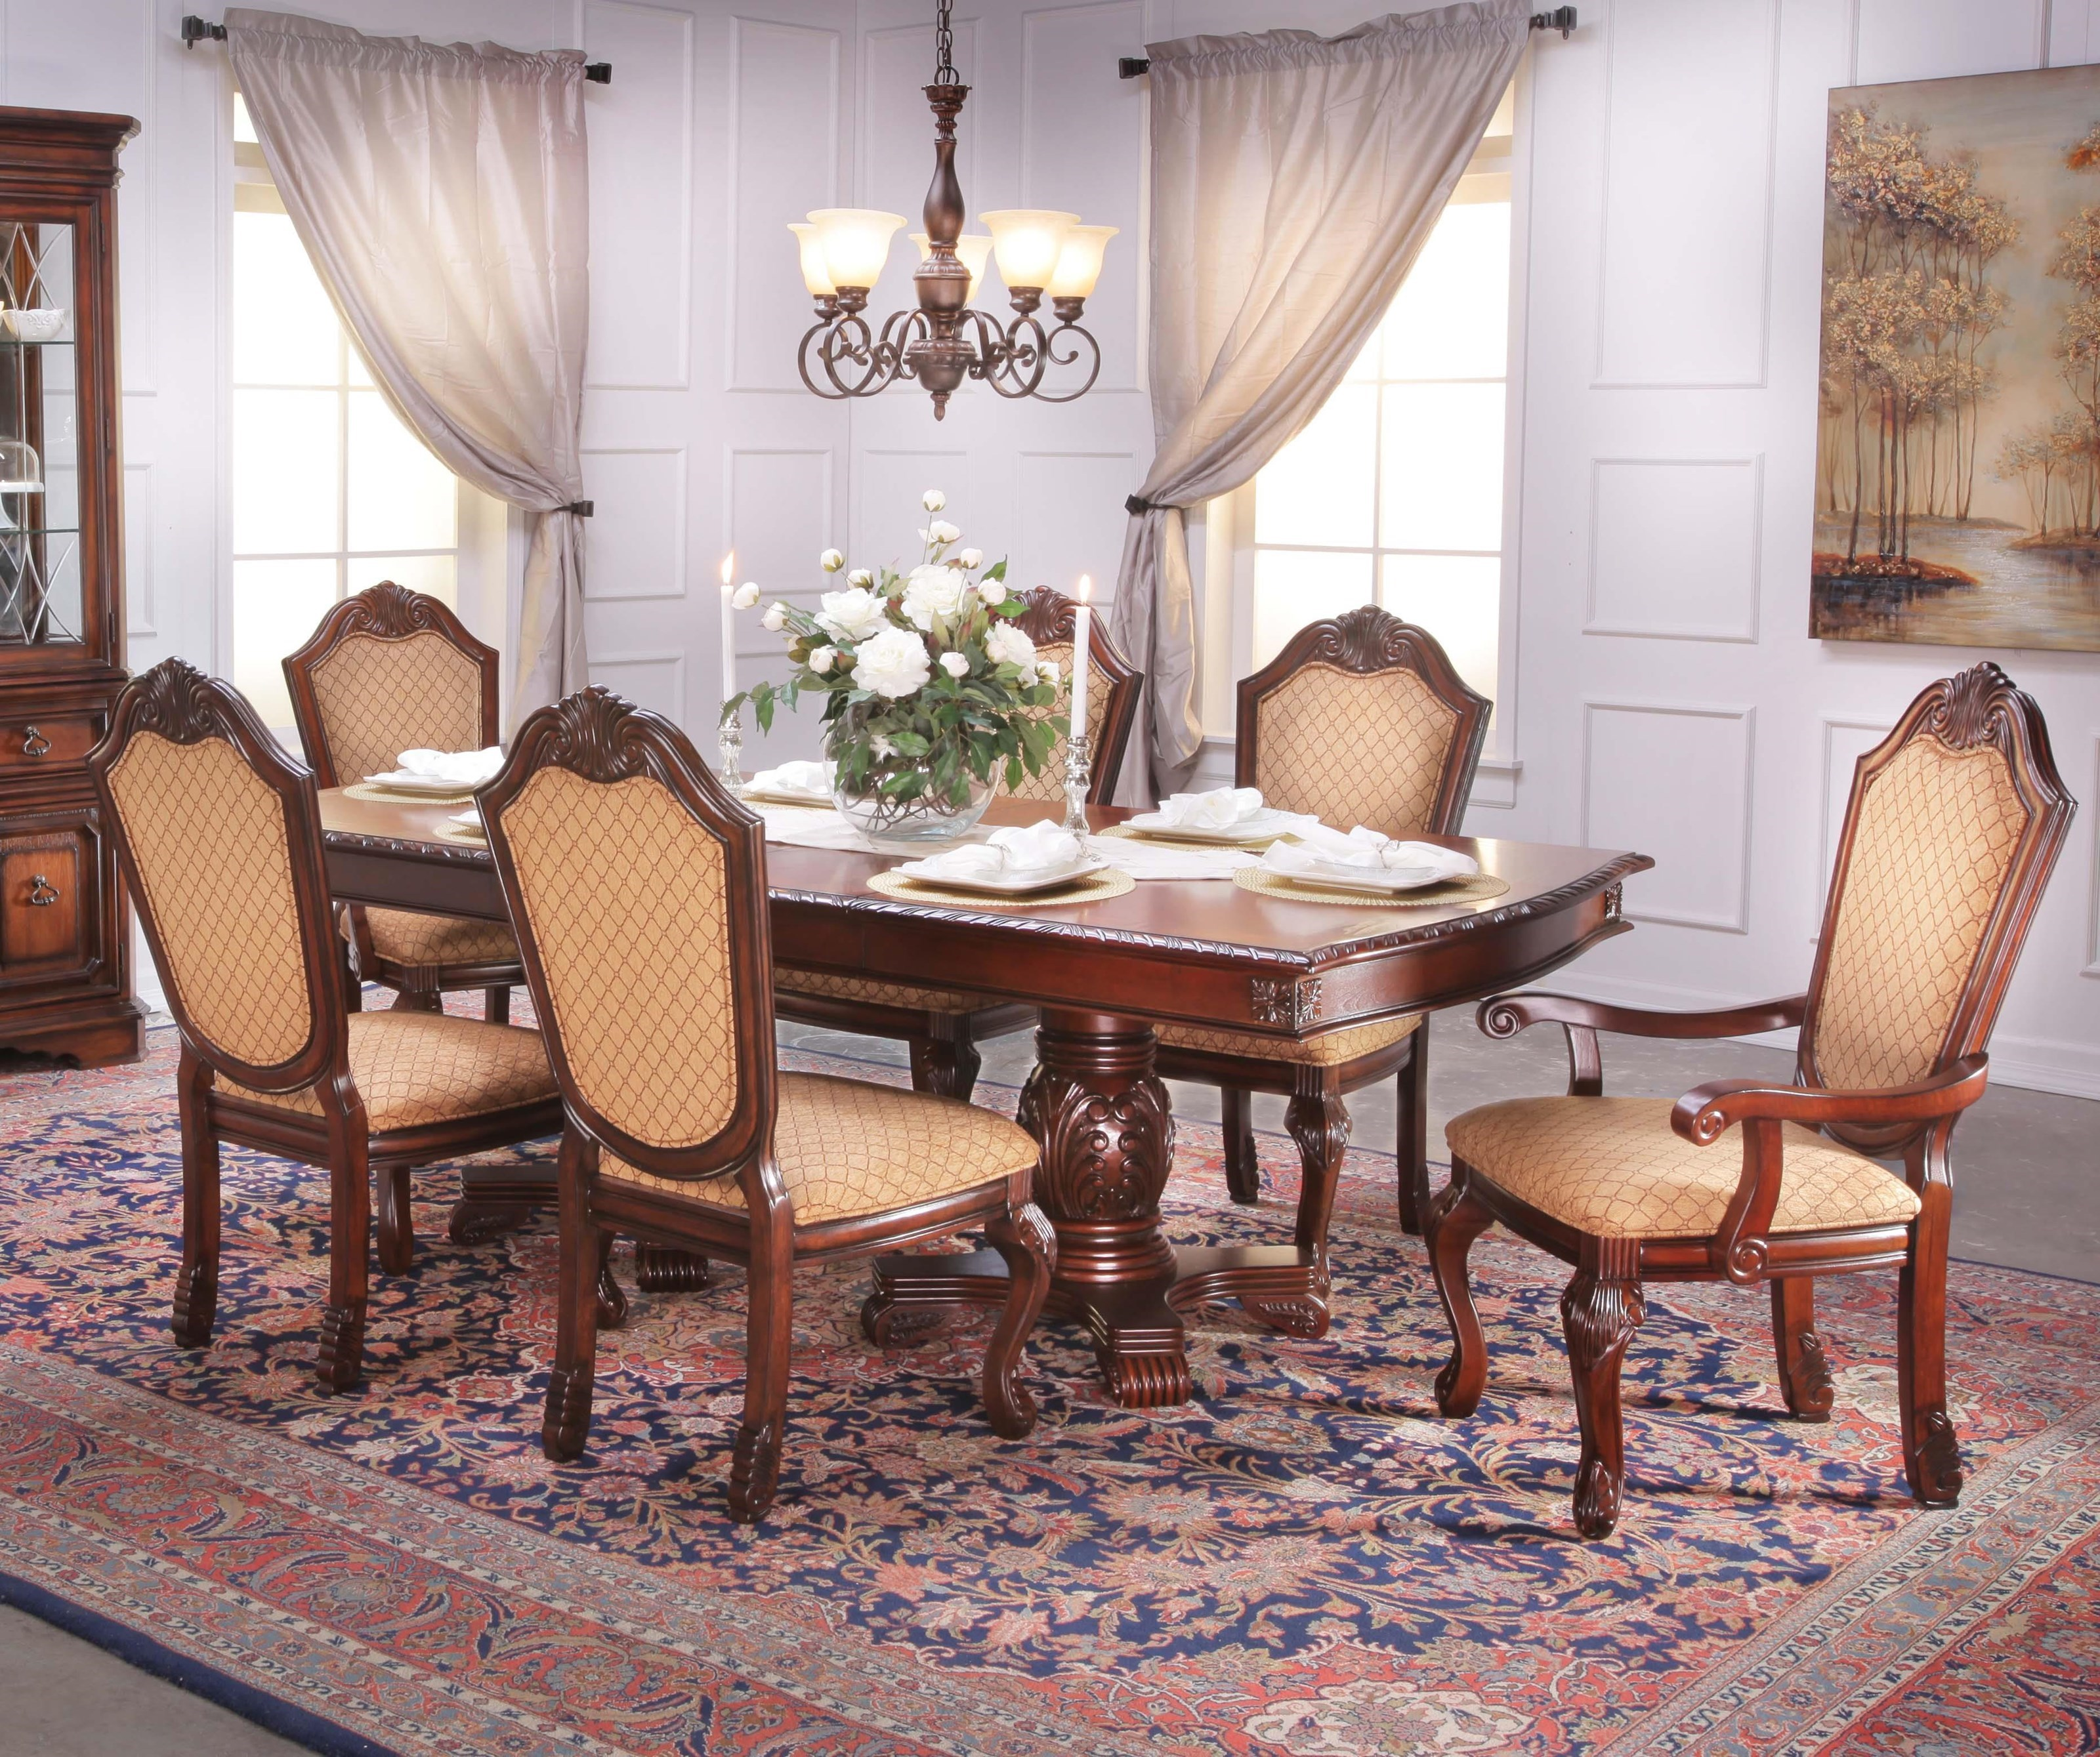 Lee Furniture TBL0057-Piece Dining Set ... & Lee Furniture TBL005 7-Piece Traditional Warm Walnut Dining Table ...